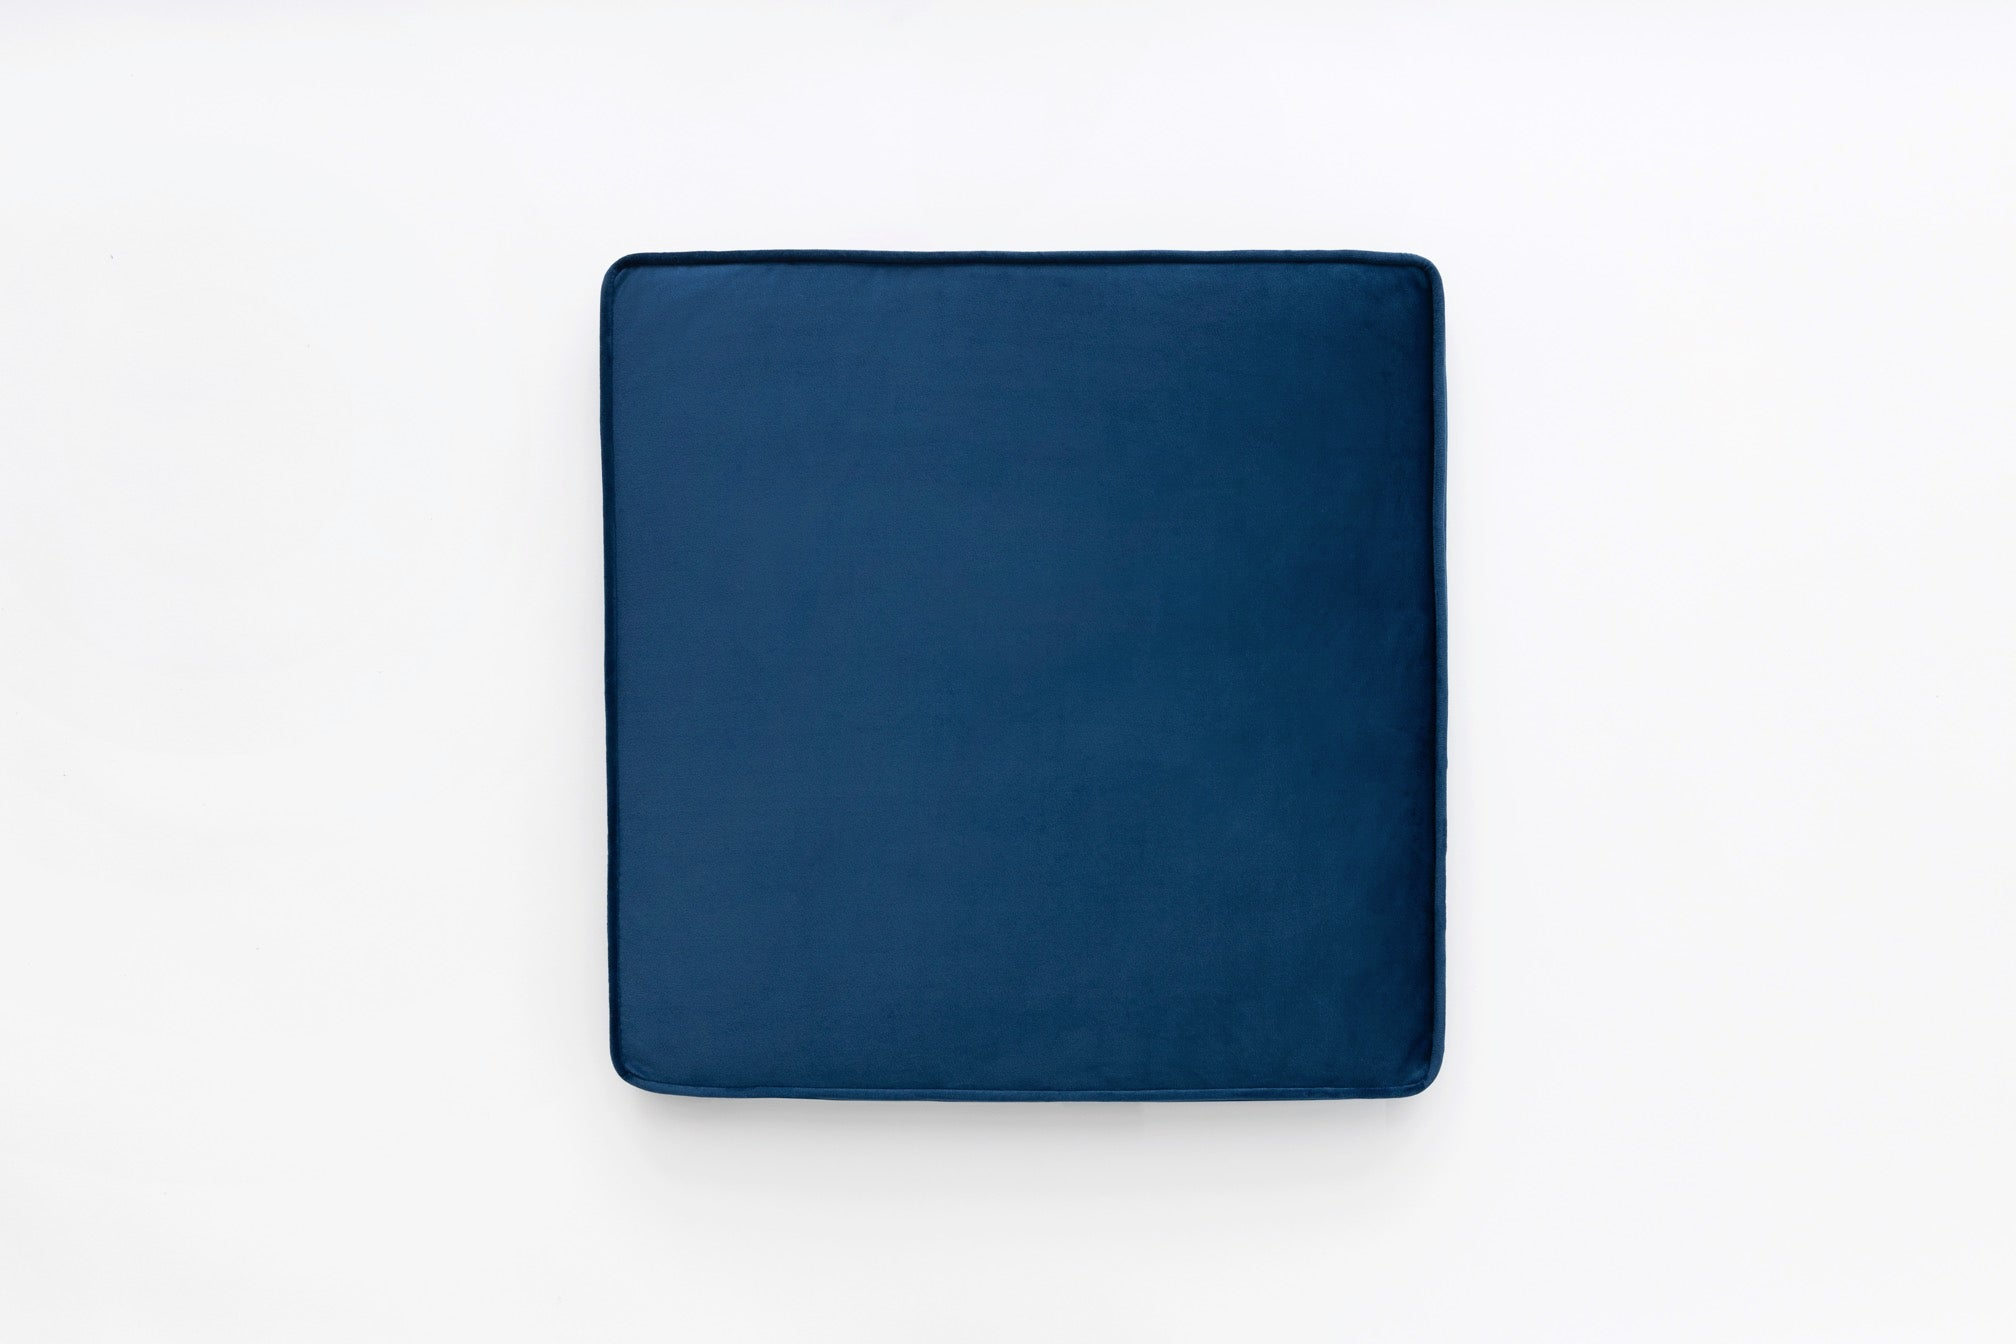 Seating pad - Navy velvet